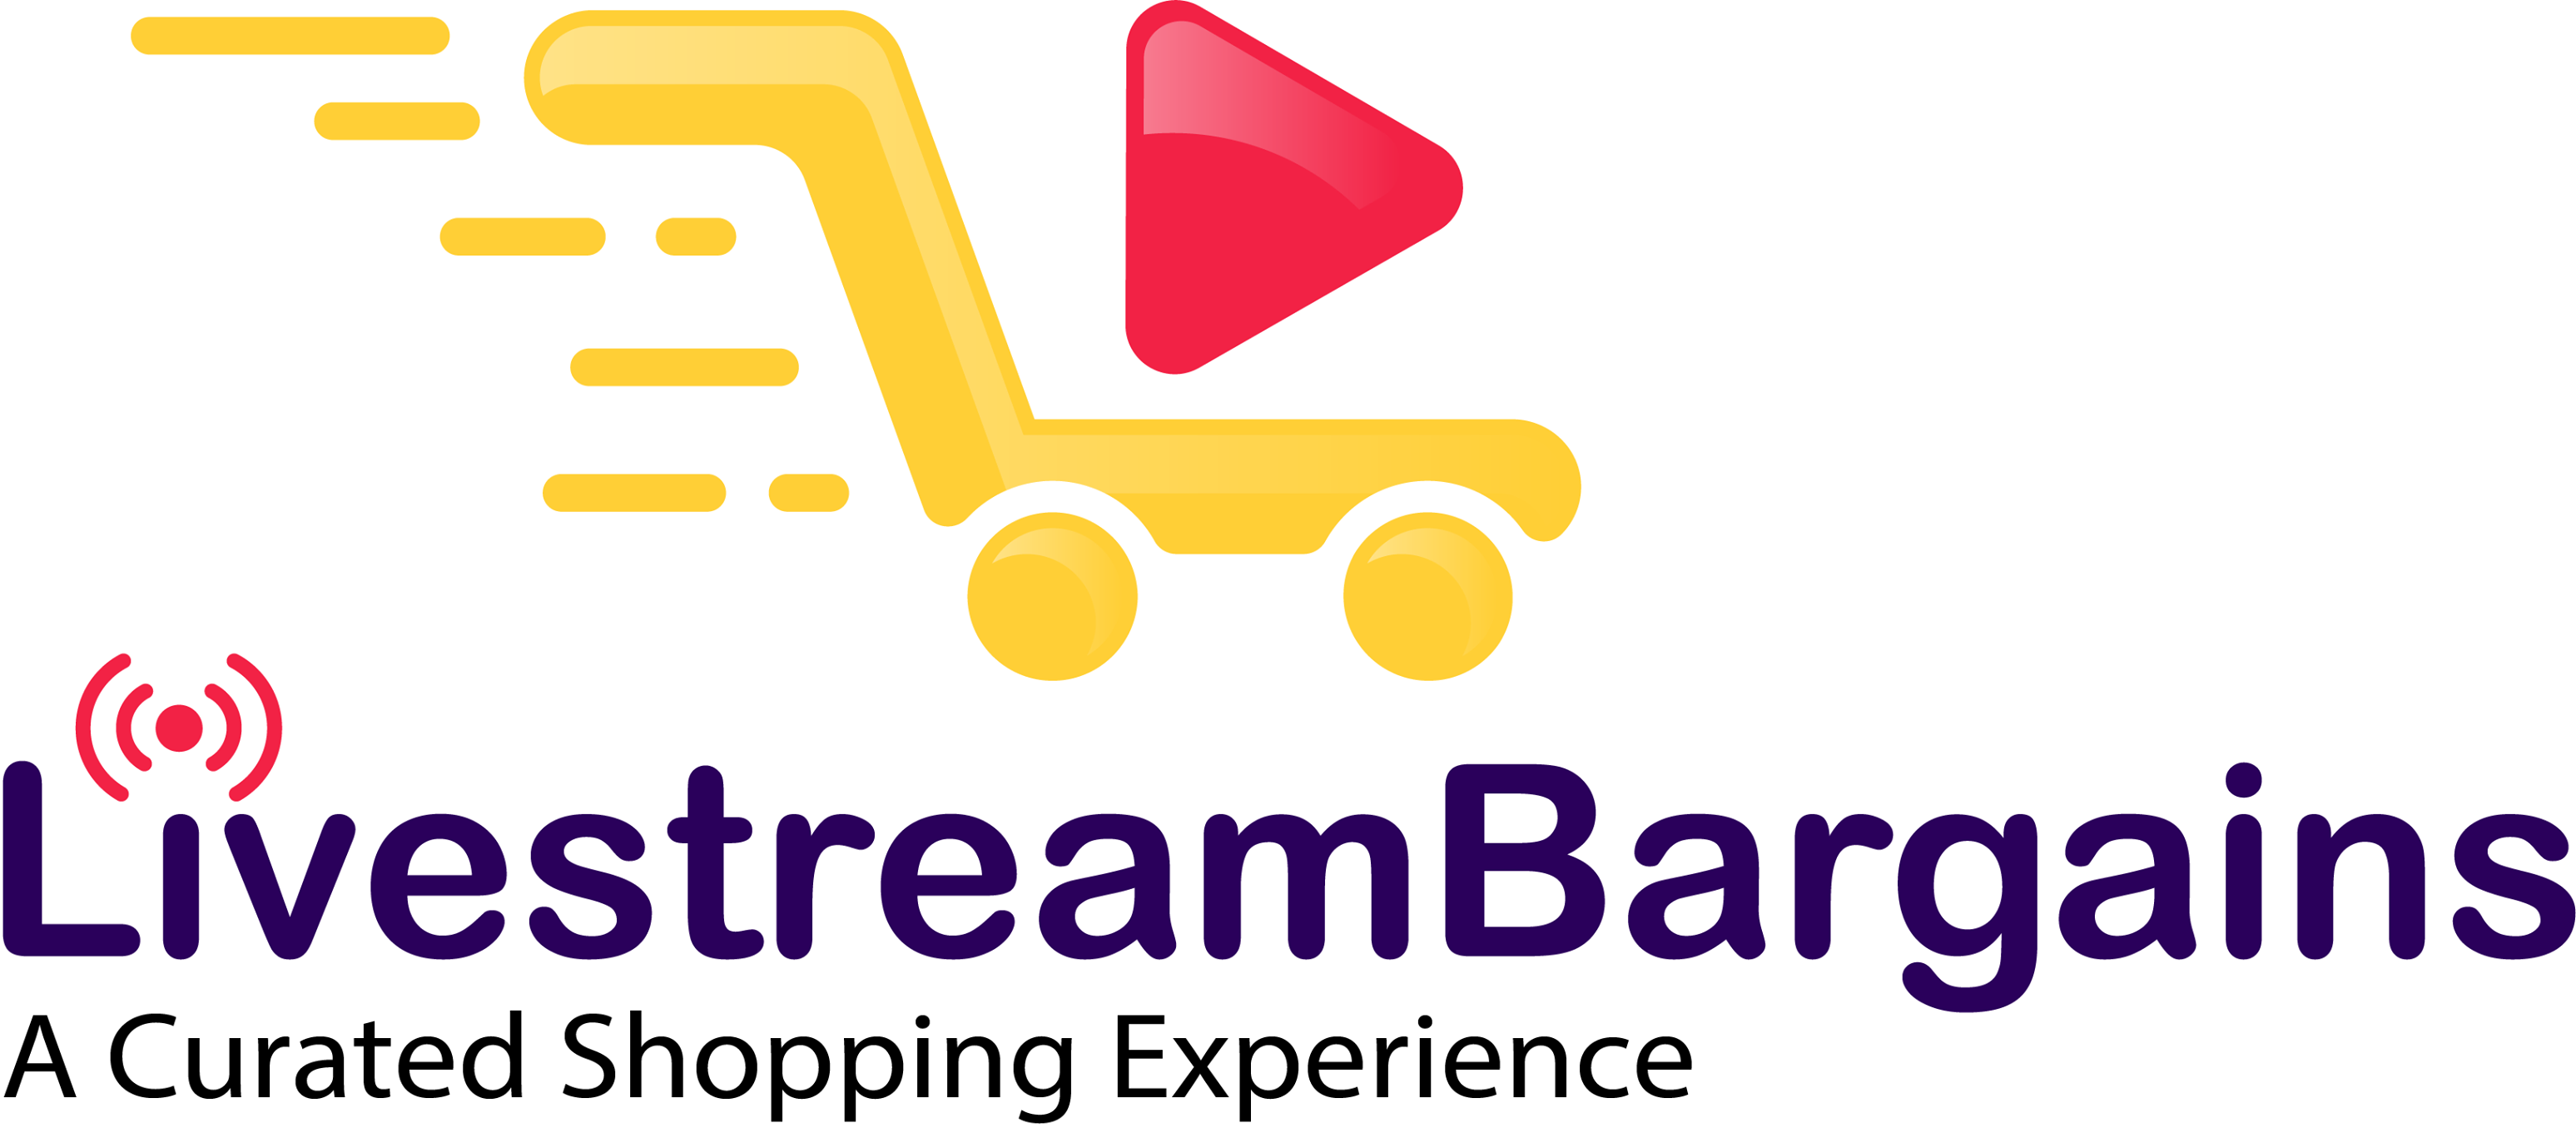 Livestreambargains Launches a New Service to help Independent Jewelry Retailers Increase Sales